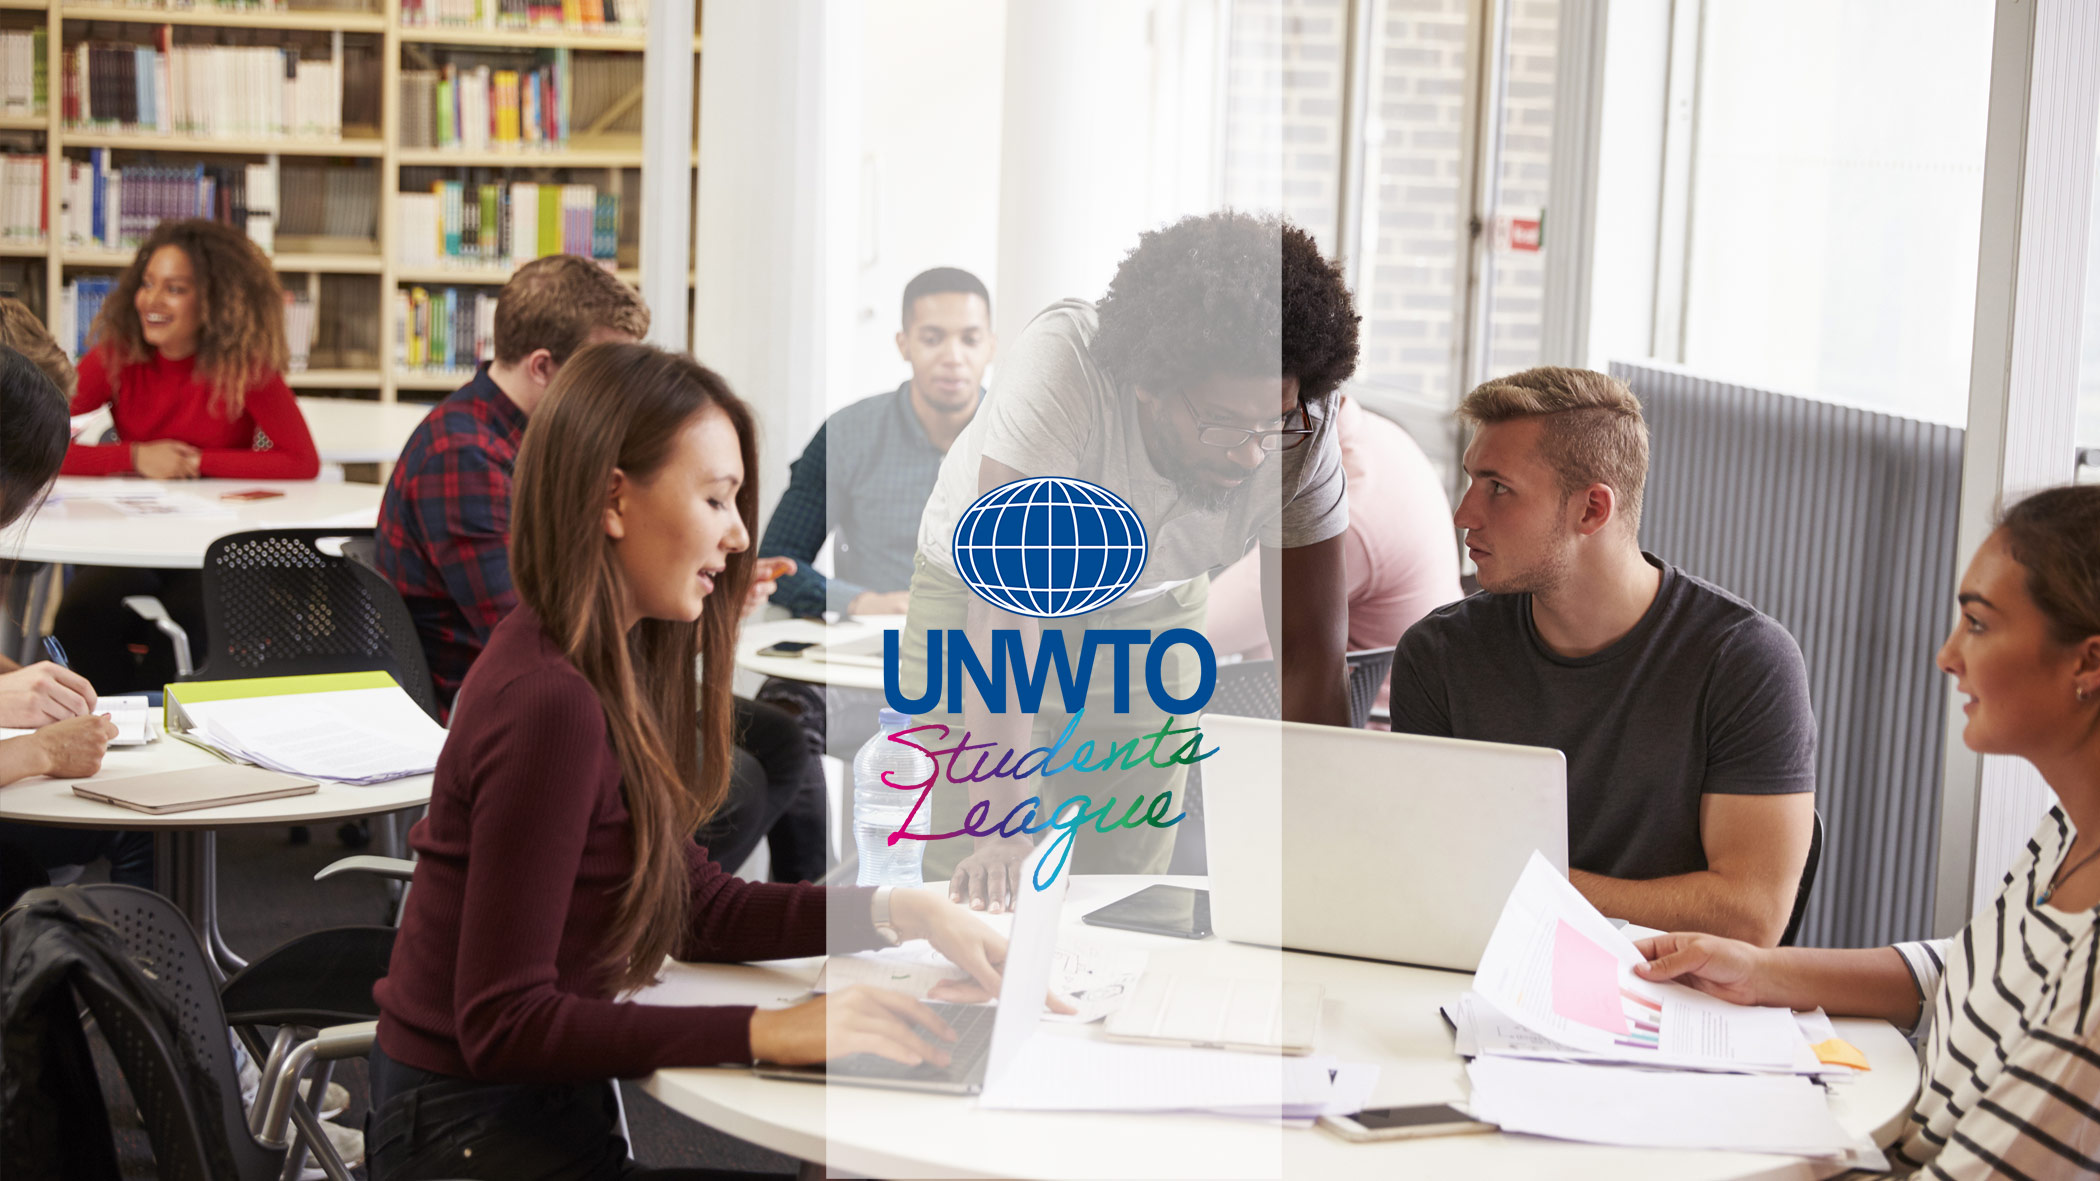 UNWTO Students' League - What